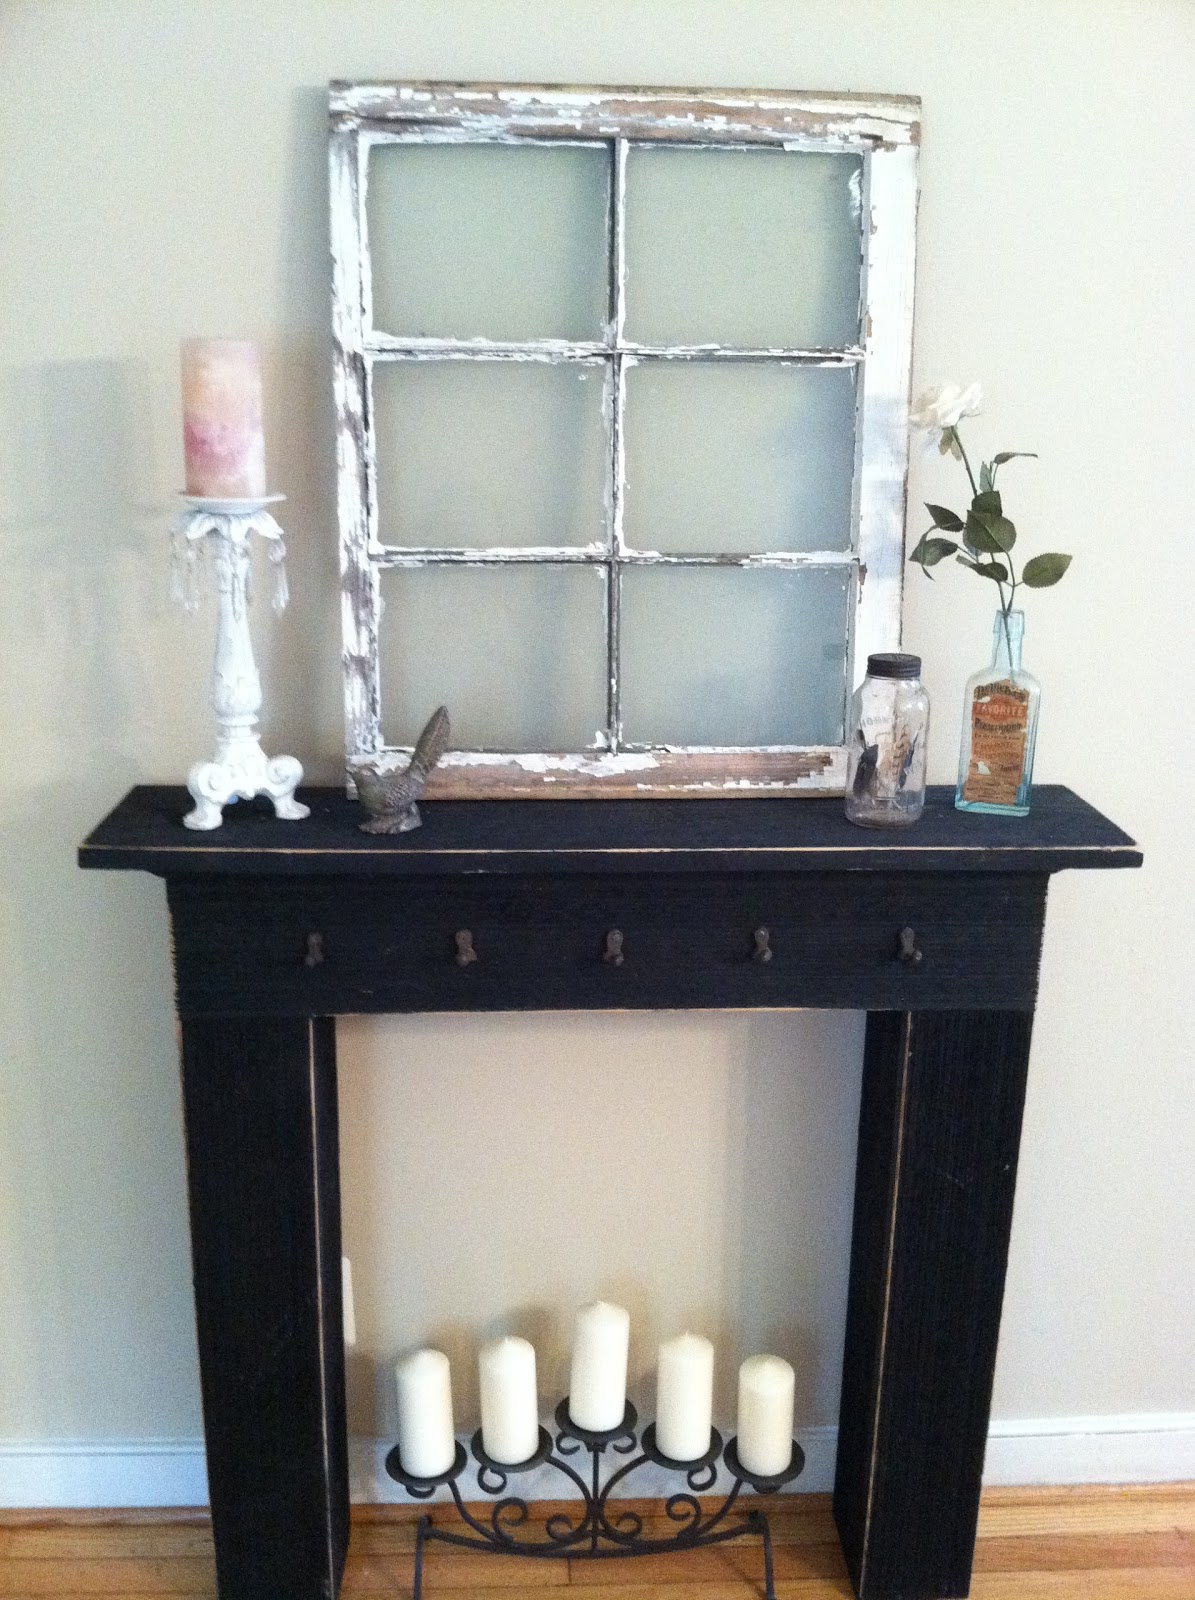 Vintage afterthoughts a few of my favorite things Fireplace ideas no fire